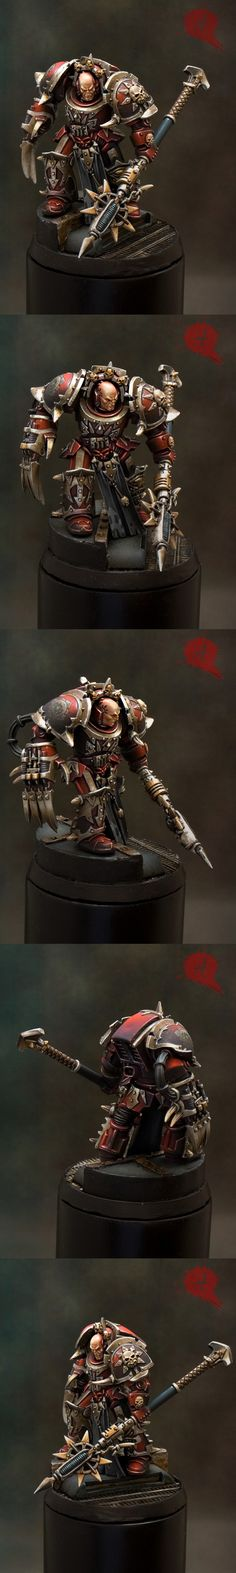 SPAIN 2011 Madrid - Warhammer 40,000 Single Miniature - Demon Winner, the unofficial Golden Demon website